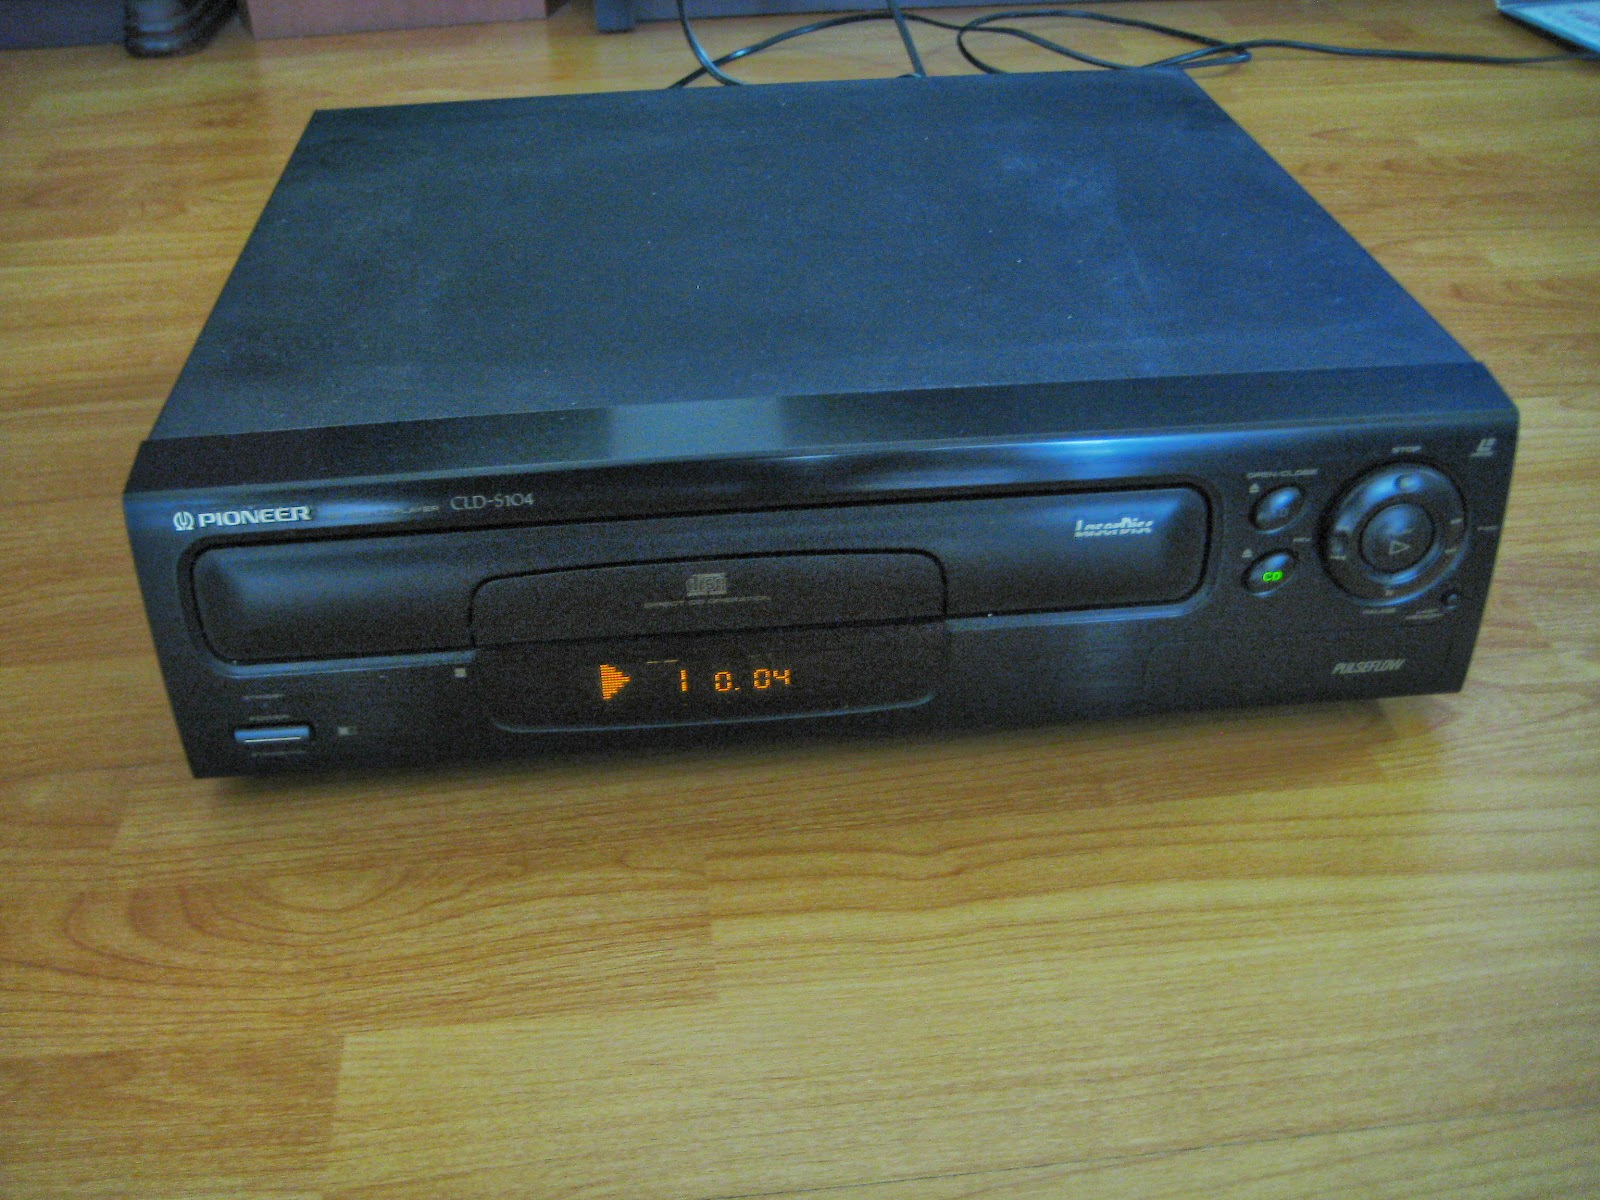 Recycle Mart Penang Laser Disc Player Pioneer Cld S104 200175 Circuitwriter Pen With Precision Conductive Ink